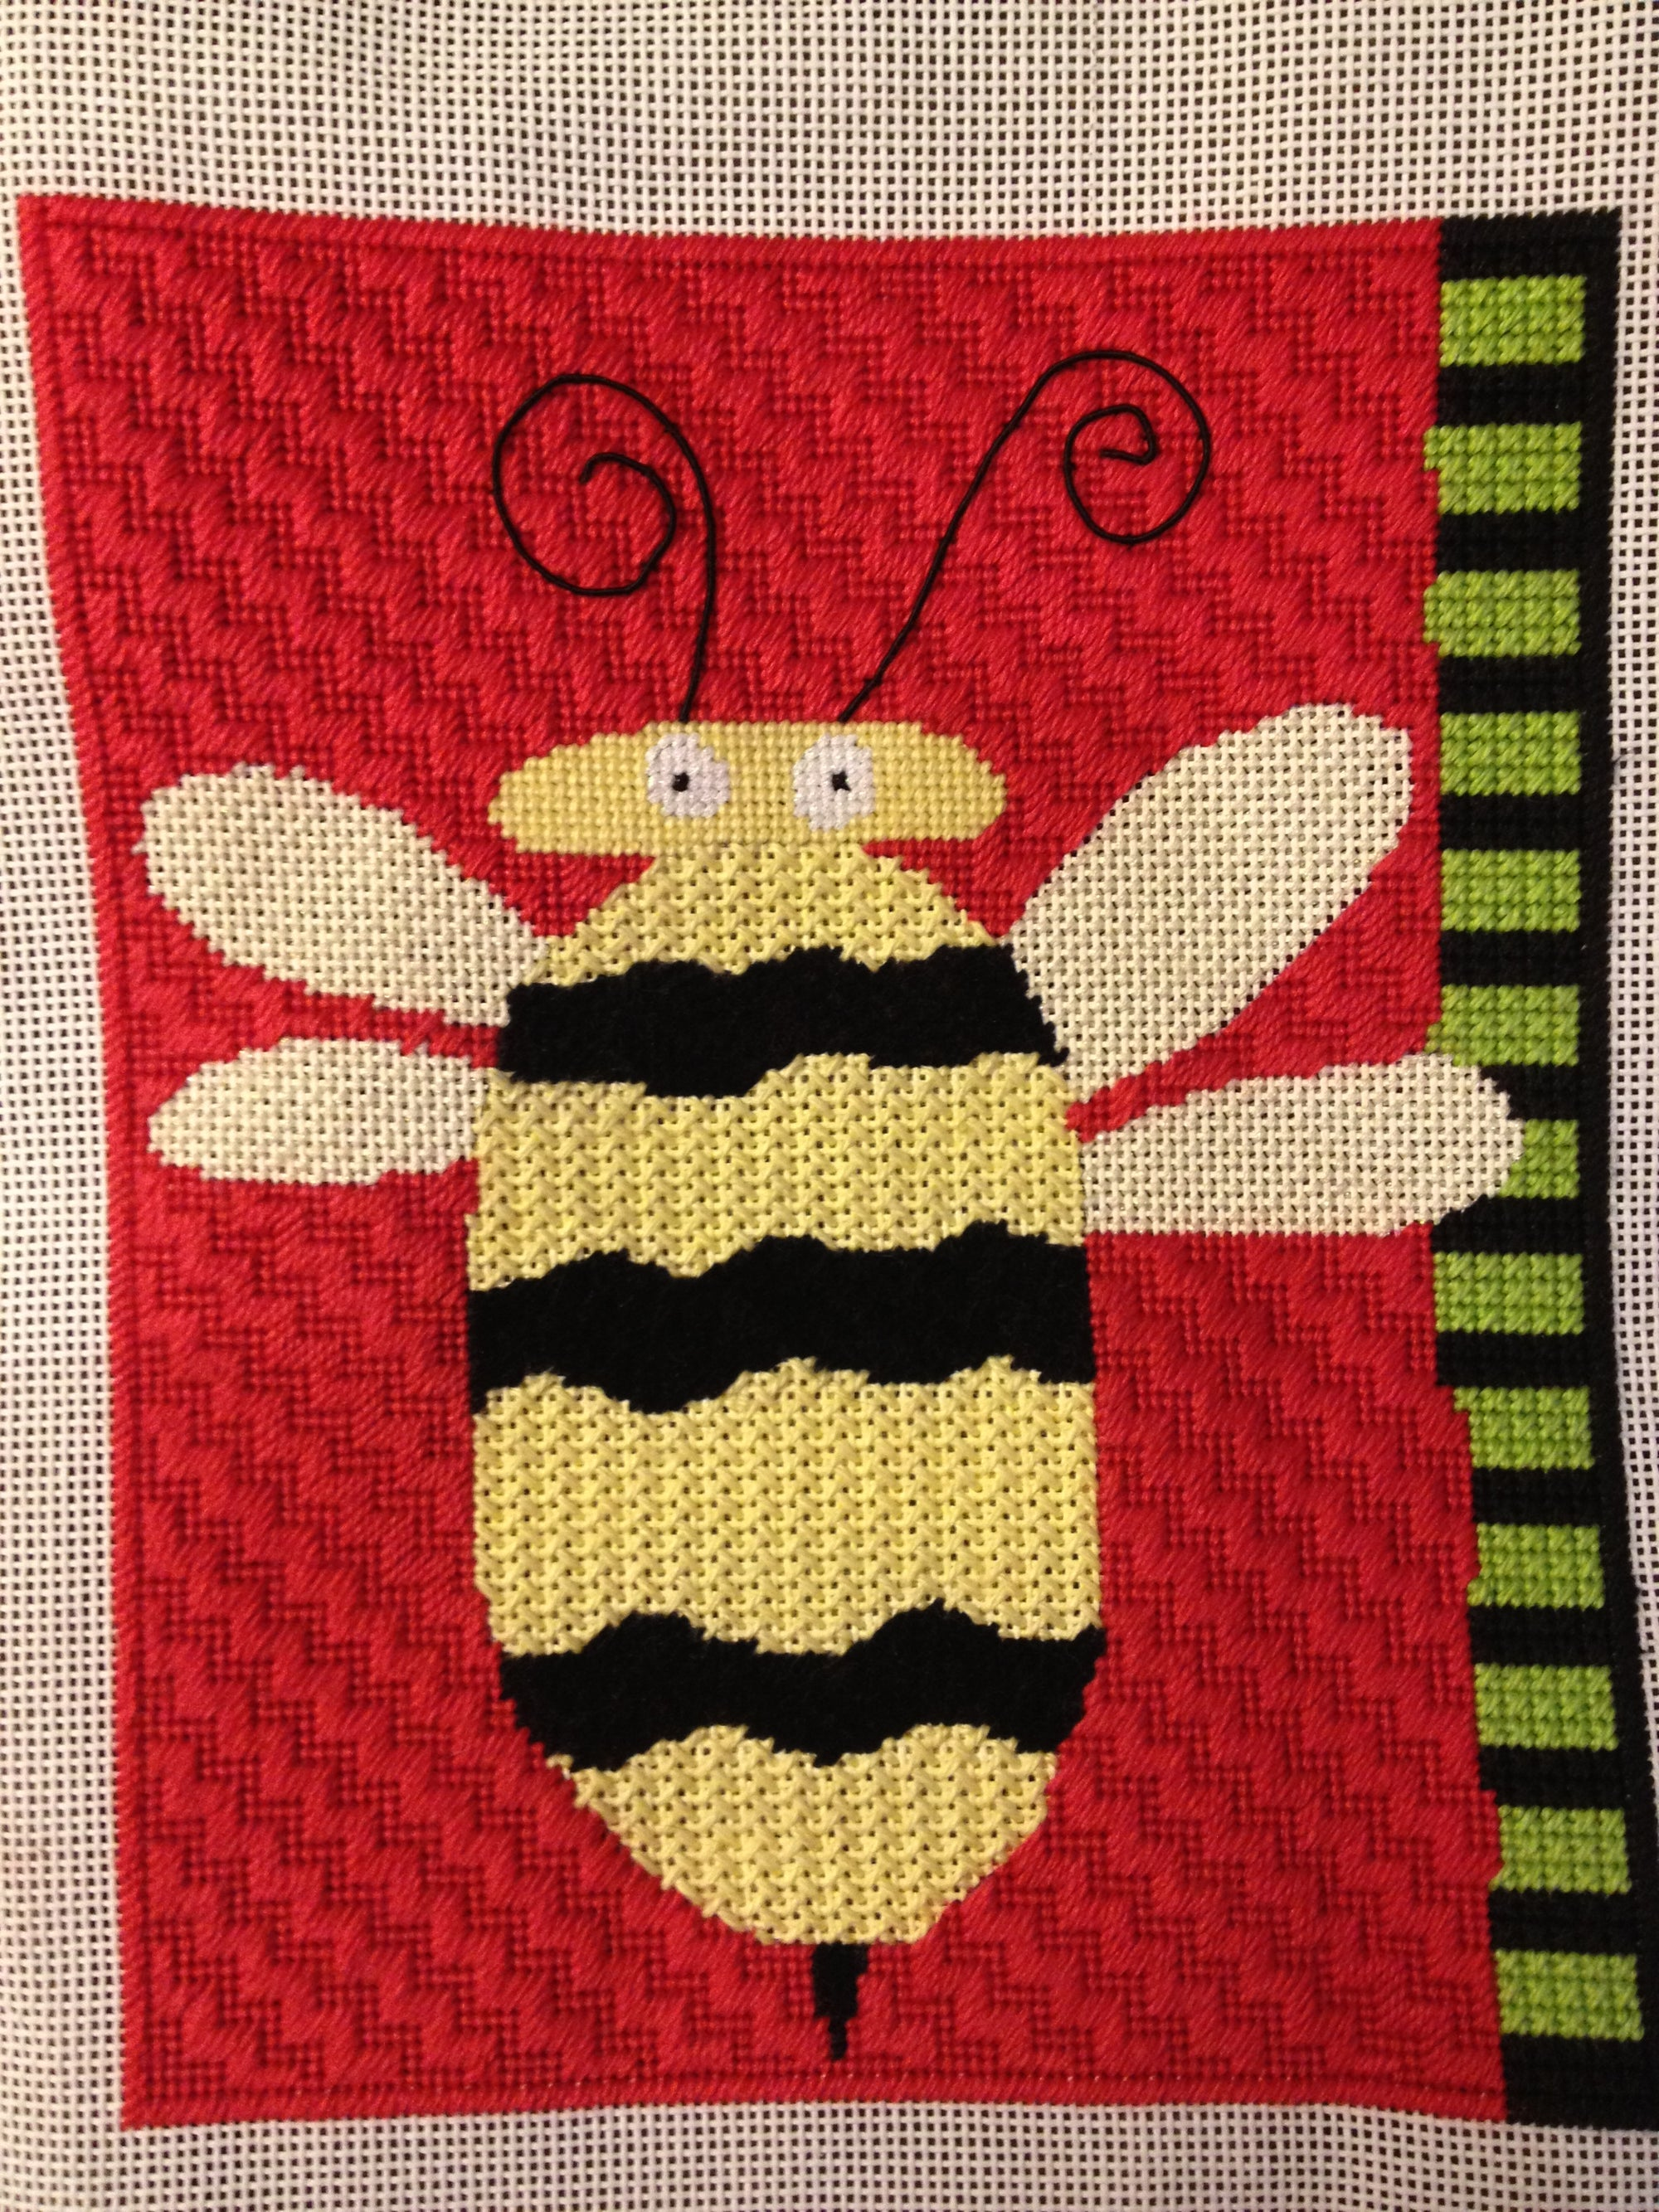 Maggie & Co. bumble bee canvas (completed)